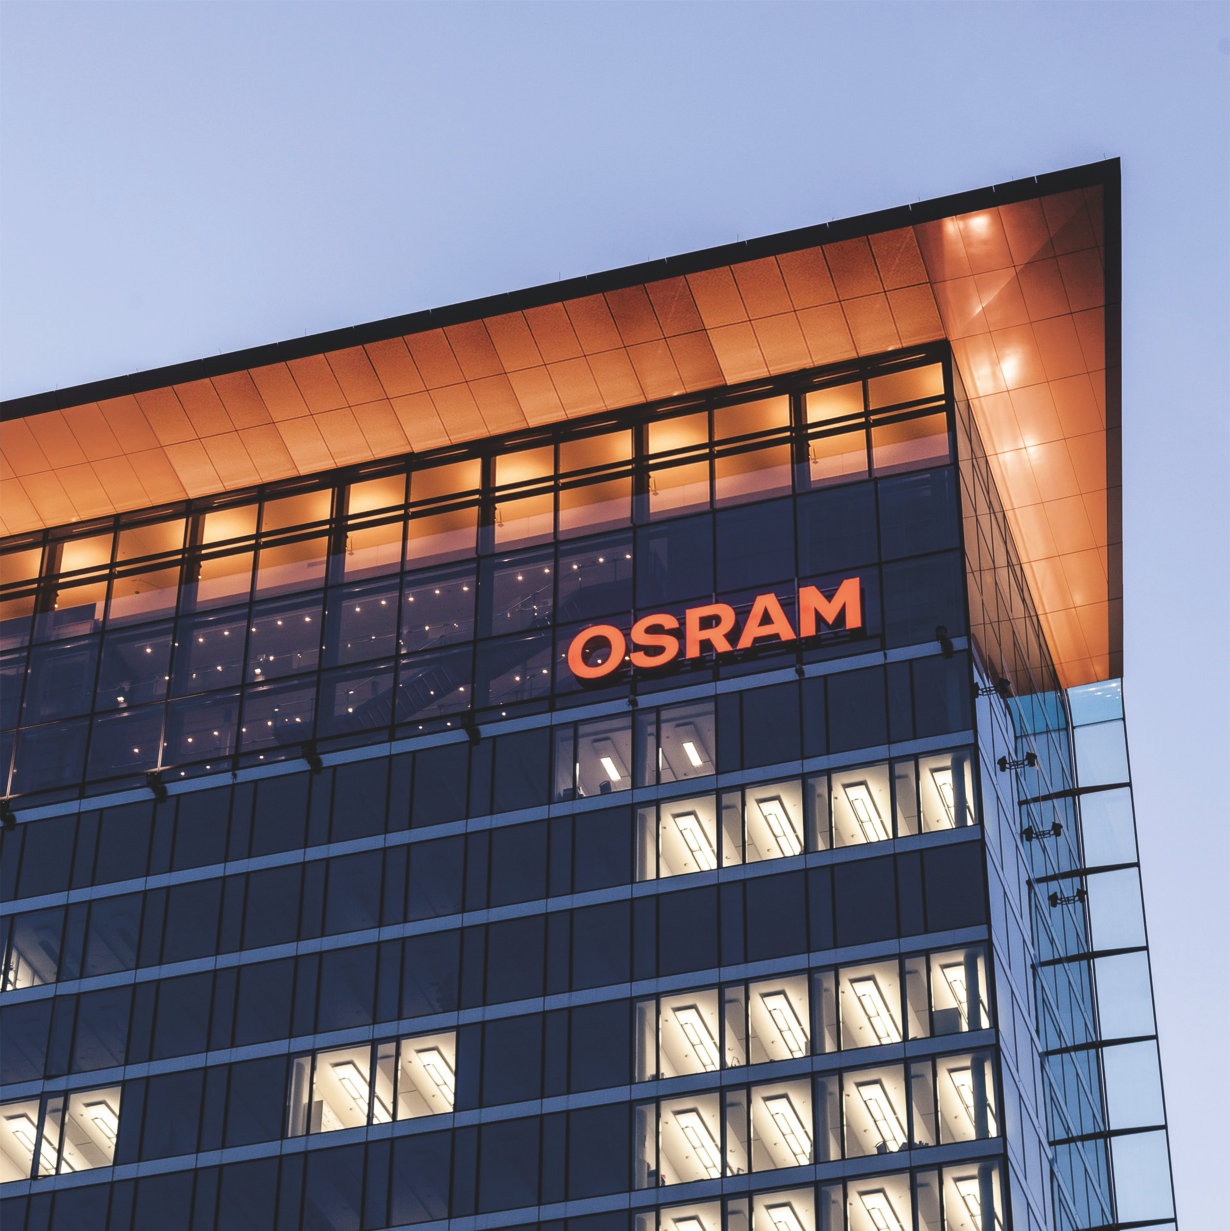 About OSRAM